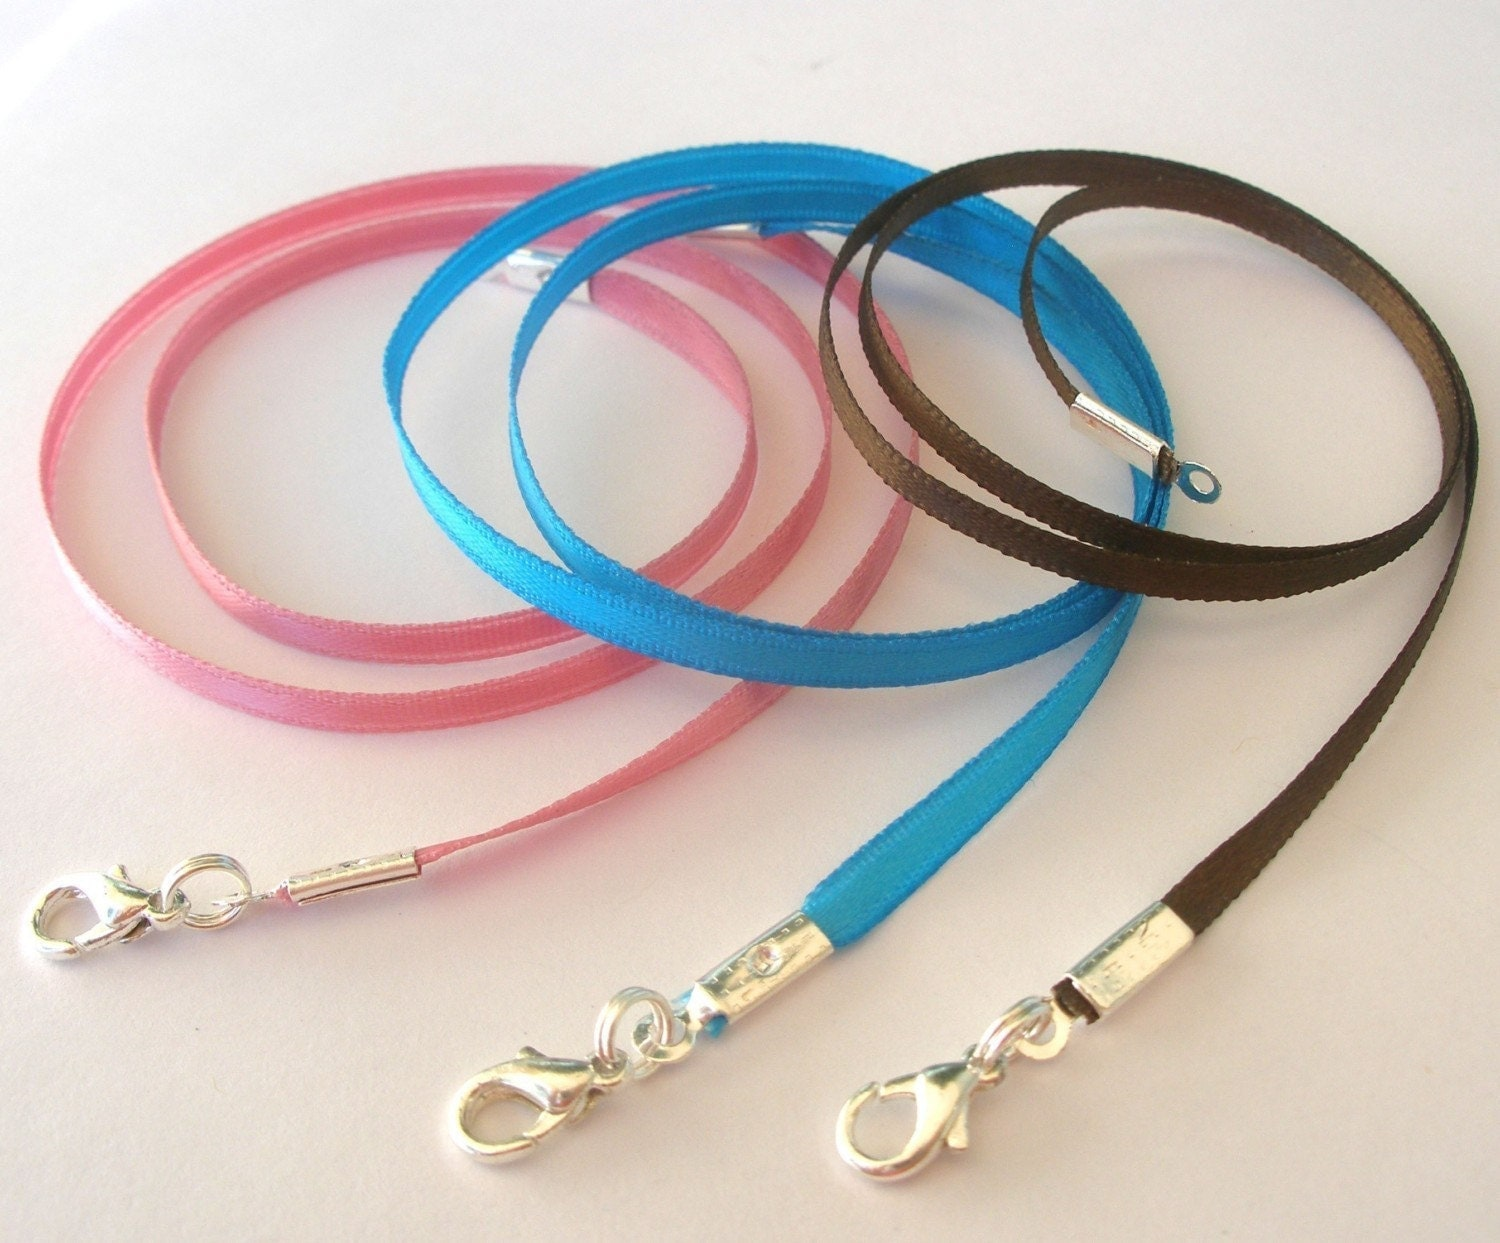 100 - Satin Necklace Cords - Any Length, 21 Colors - Use w/Scrabble/Glass Tile Pendants and all Aanraku bails.